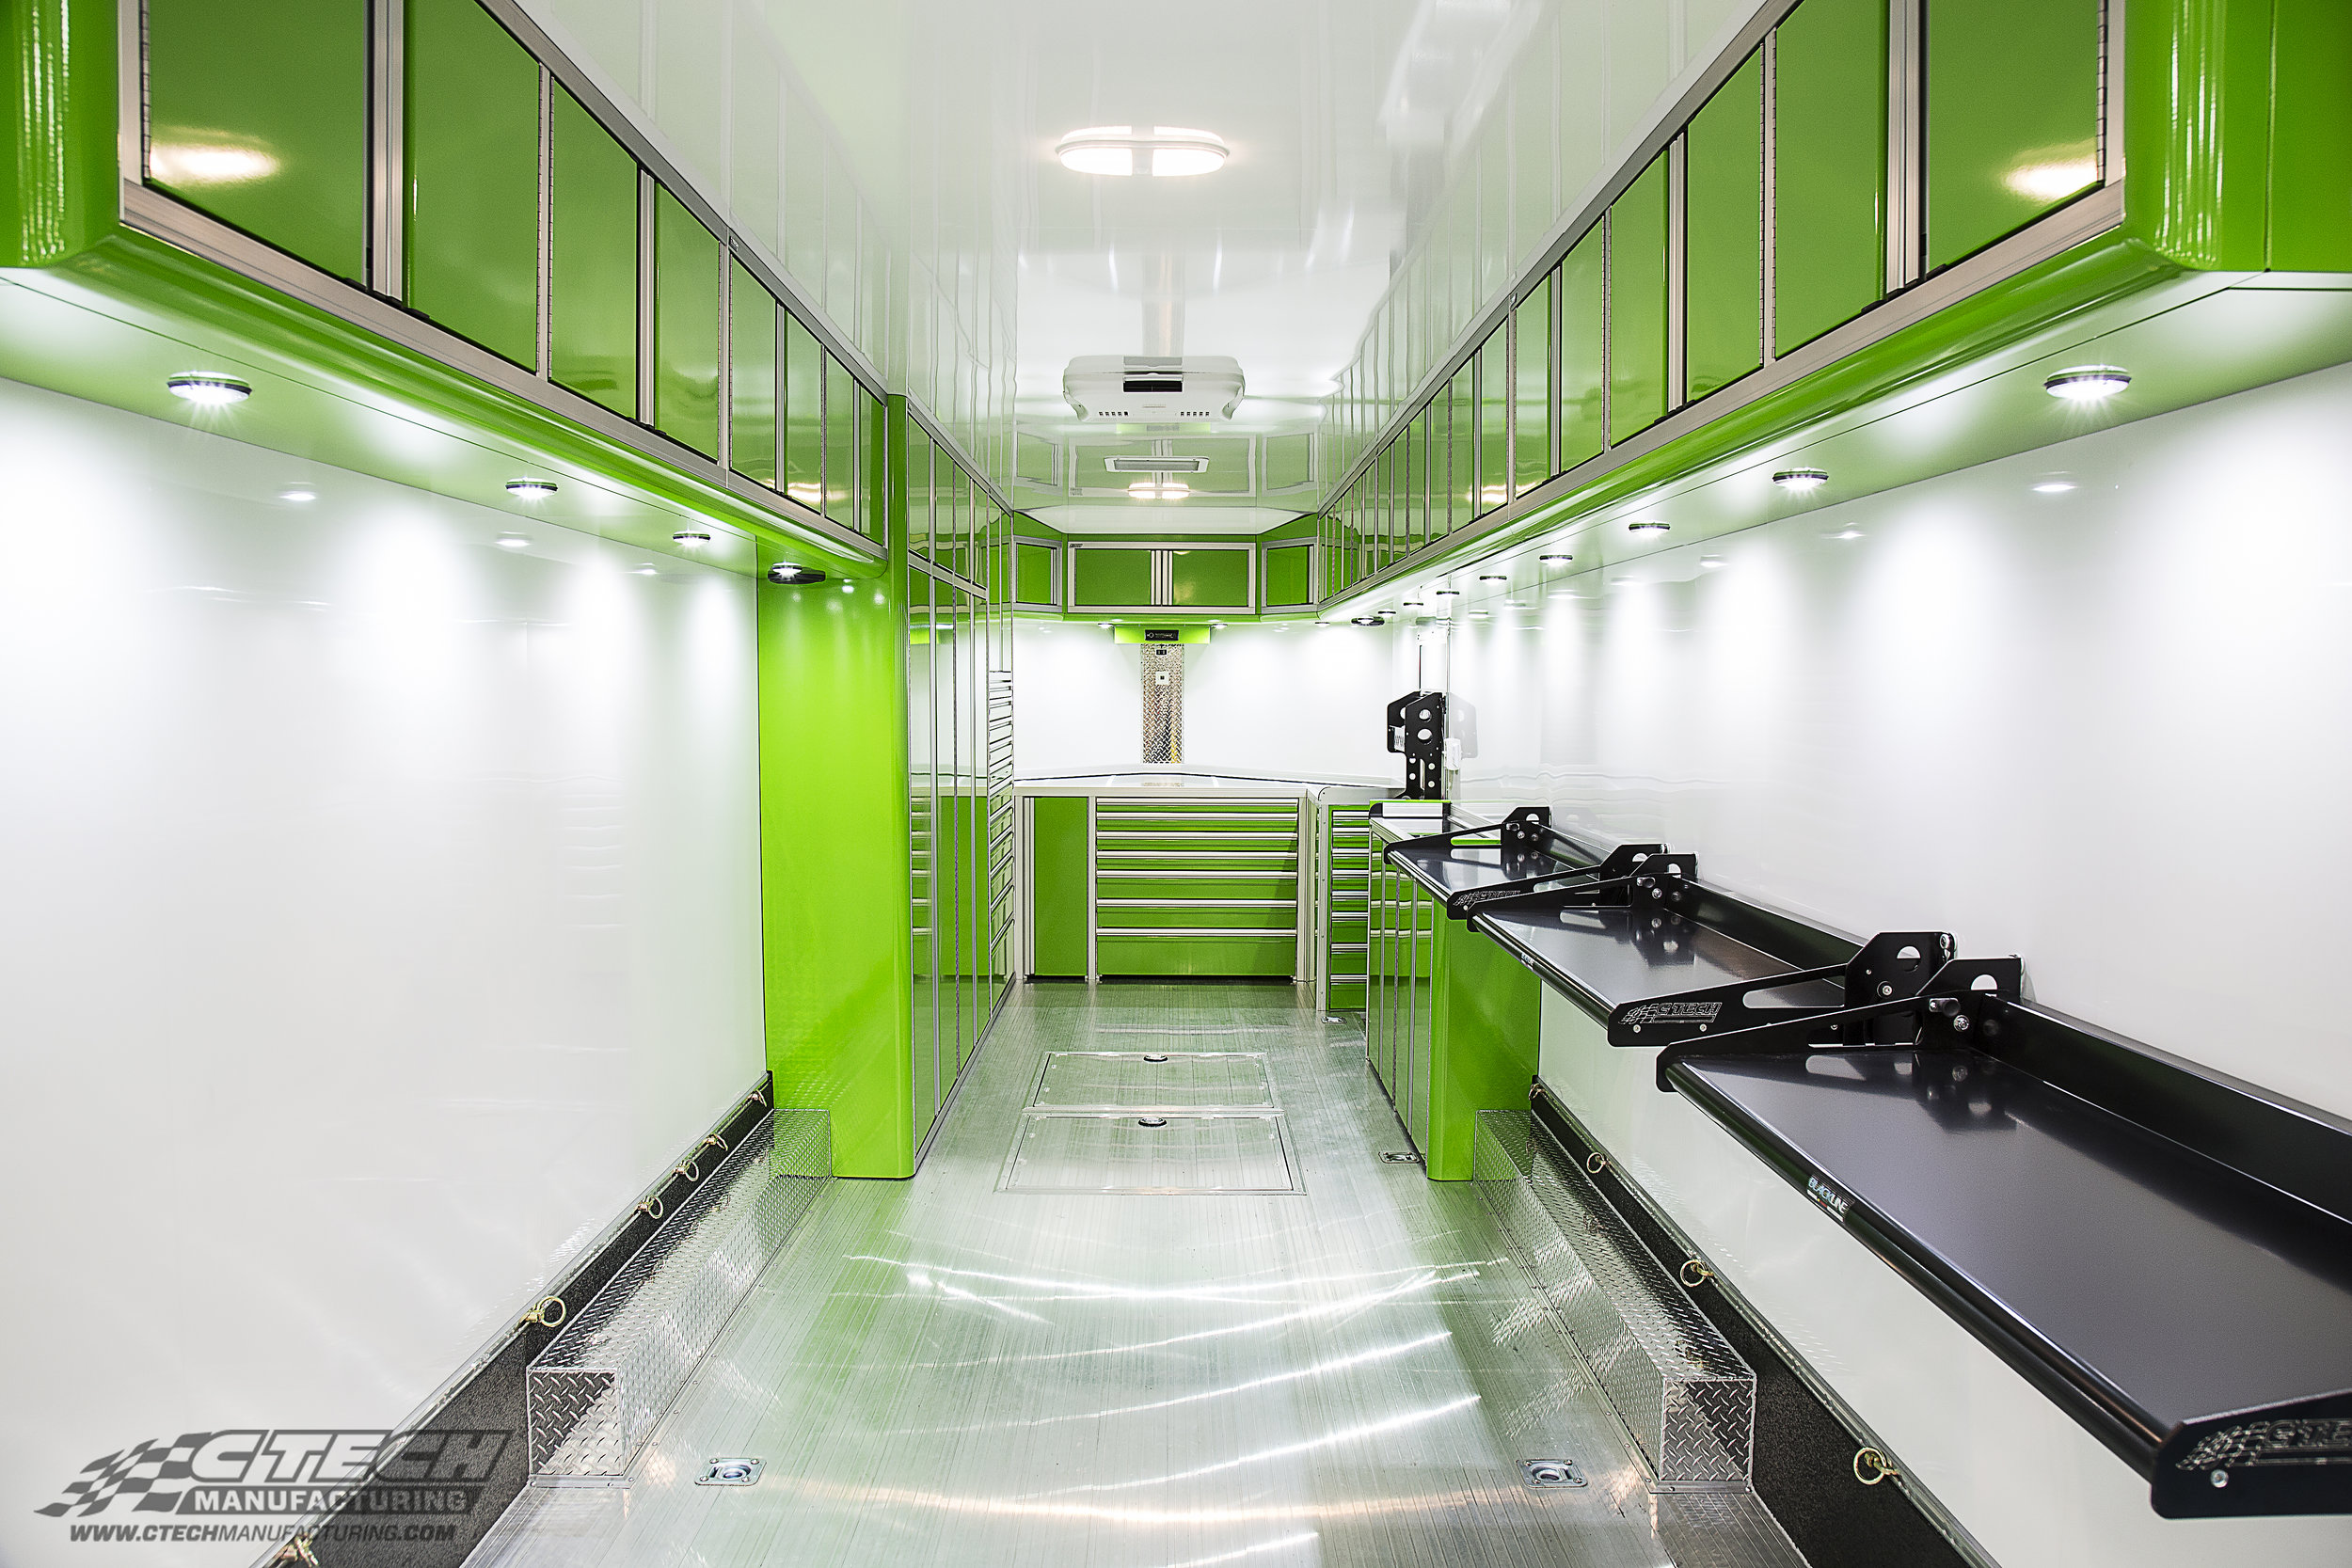 Barry Vanook's V-nose trailer looks stunning with these CTech cabinets. Trailer storage problems require innovative thinking to solve. CTECH excels in designing, engineering, and producing highly functional, and brilliantly aesthetic custom storage solutions. BOM 30815